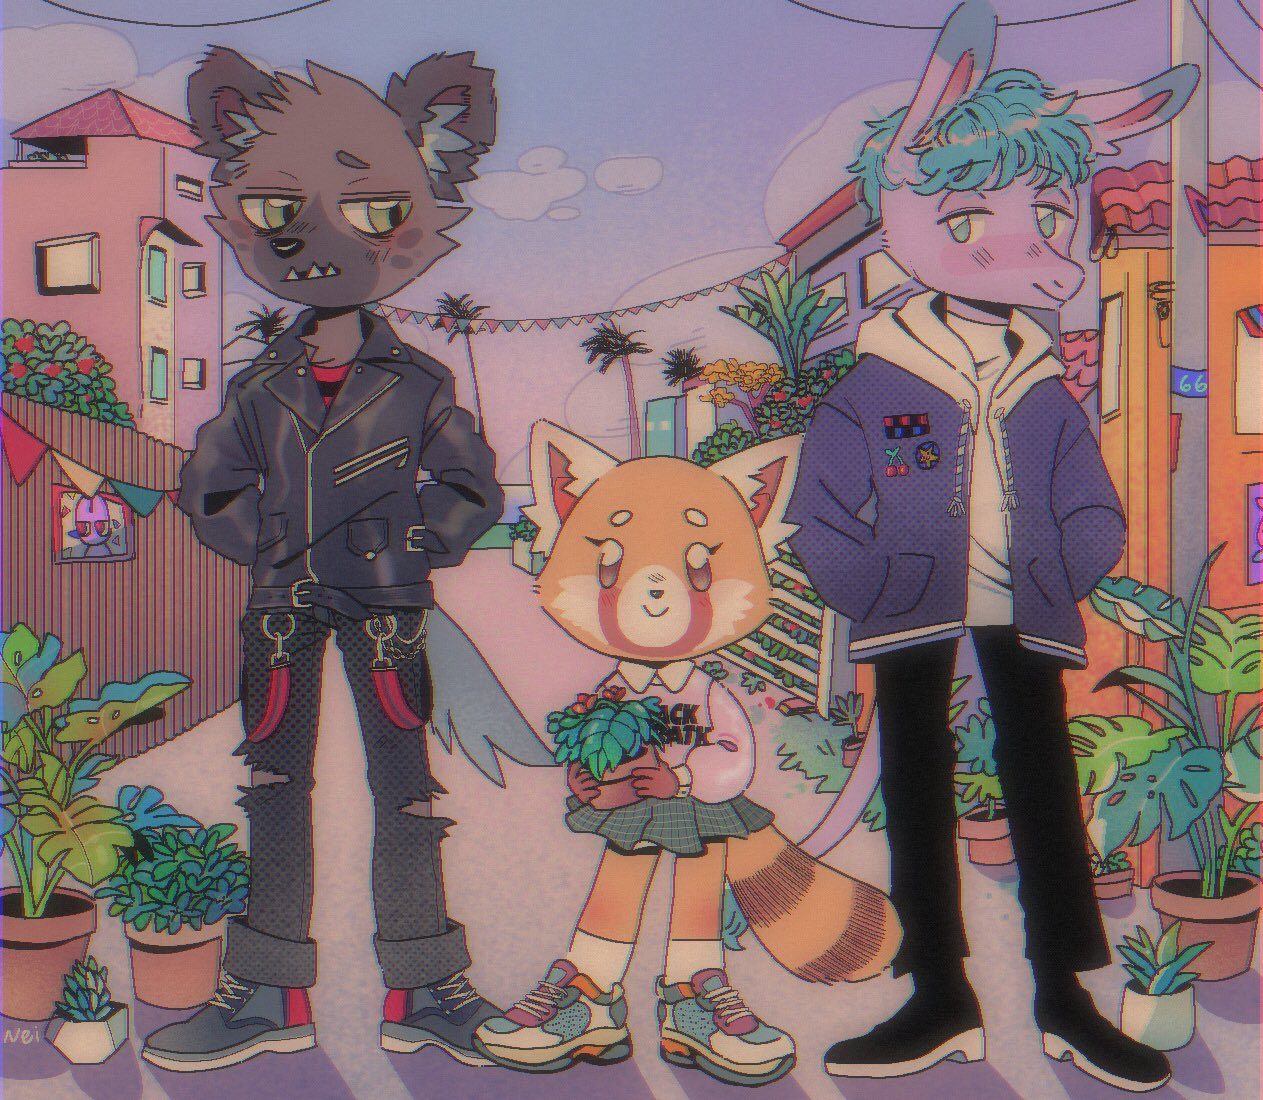 1girl 2boys aggressive_retsuko animal_ears architecture blue_eyes blush brown_eyes building casual cerealnei chain clouds concrete donkey fang fence flag furry green_eyes haida_(aggretsuko) holding hyena jacket leather leather_jacket long_sleeves looking_at_viewer multiple_boys palm_tree pastel_colors patch plant pole power_lines punk red_panda retsuko sanrio sharp_teeth shirt shoes skirt sneakers socks t-shirt tadano_(aggretsuko) tail teeth torn_clothes tree writing zipper